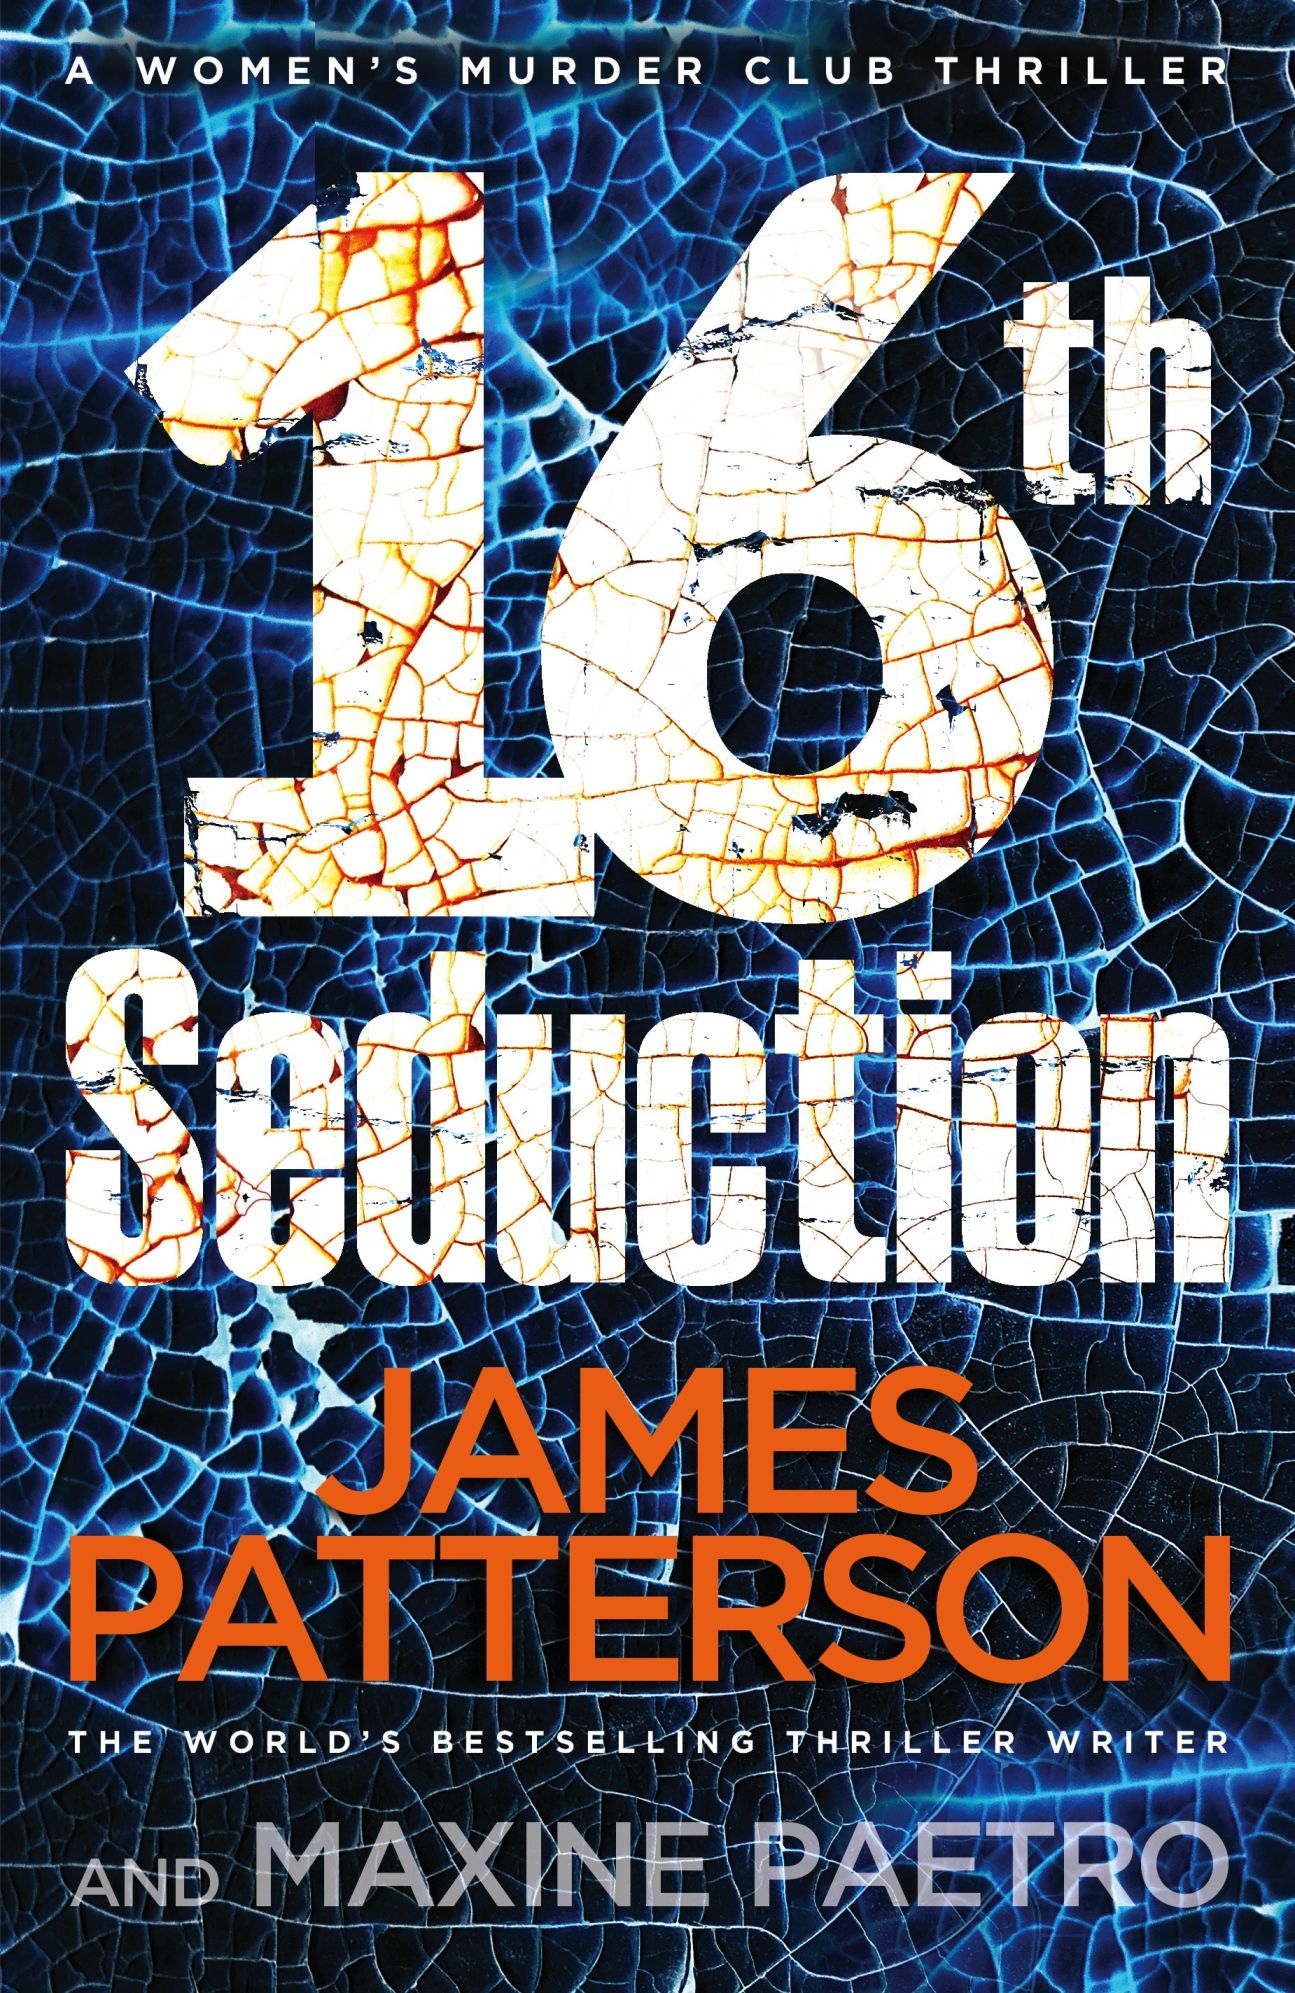 Patterson free james ebook downloads